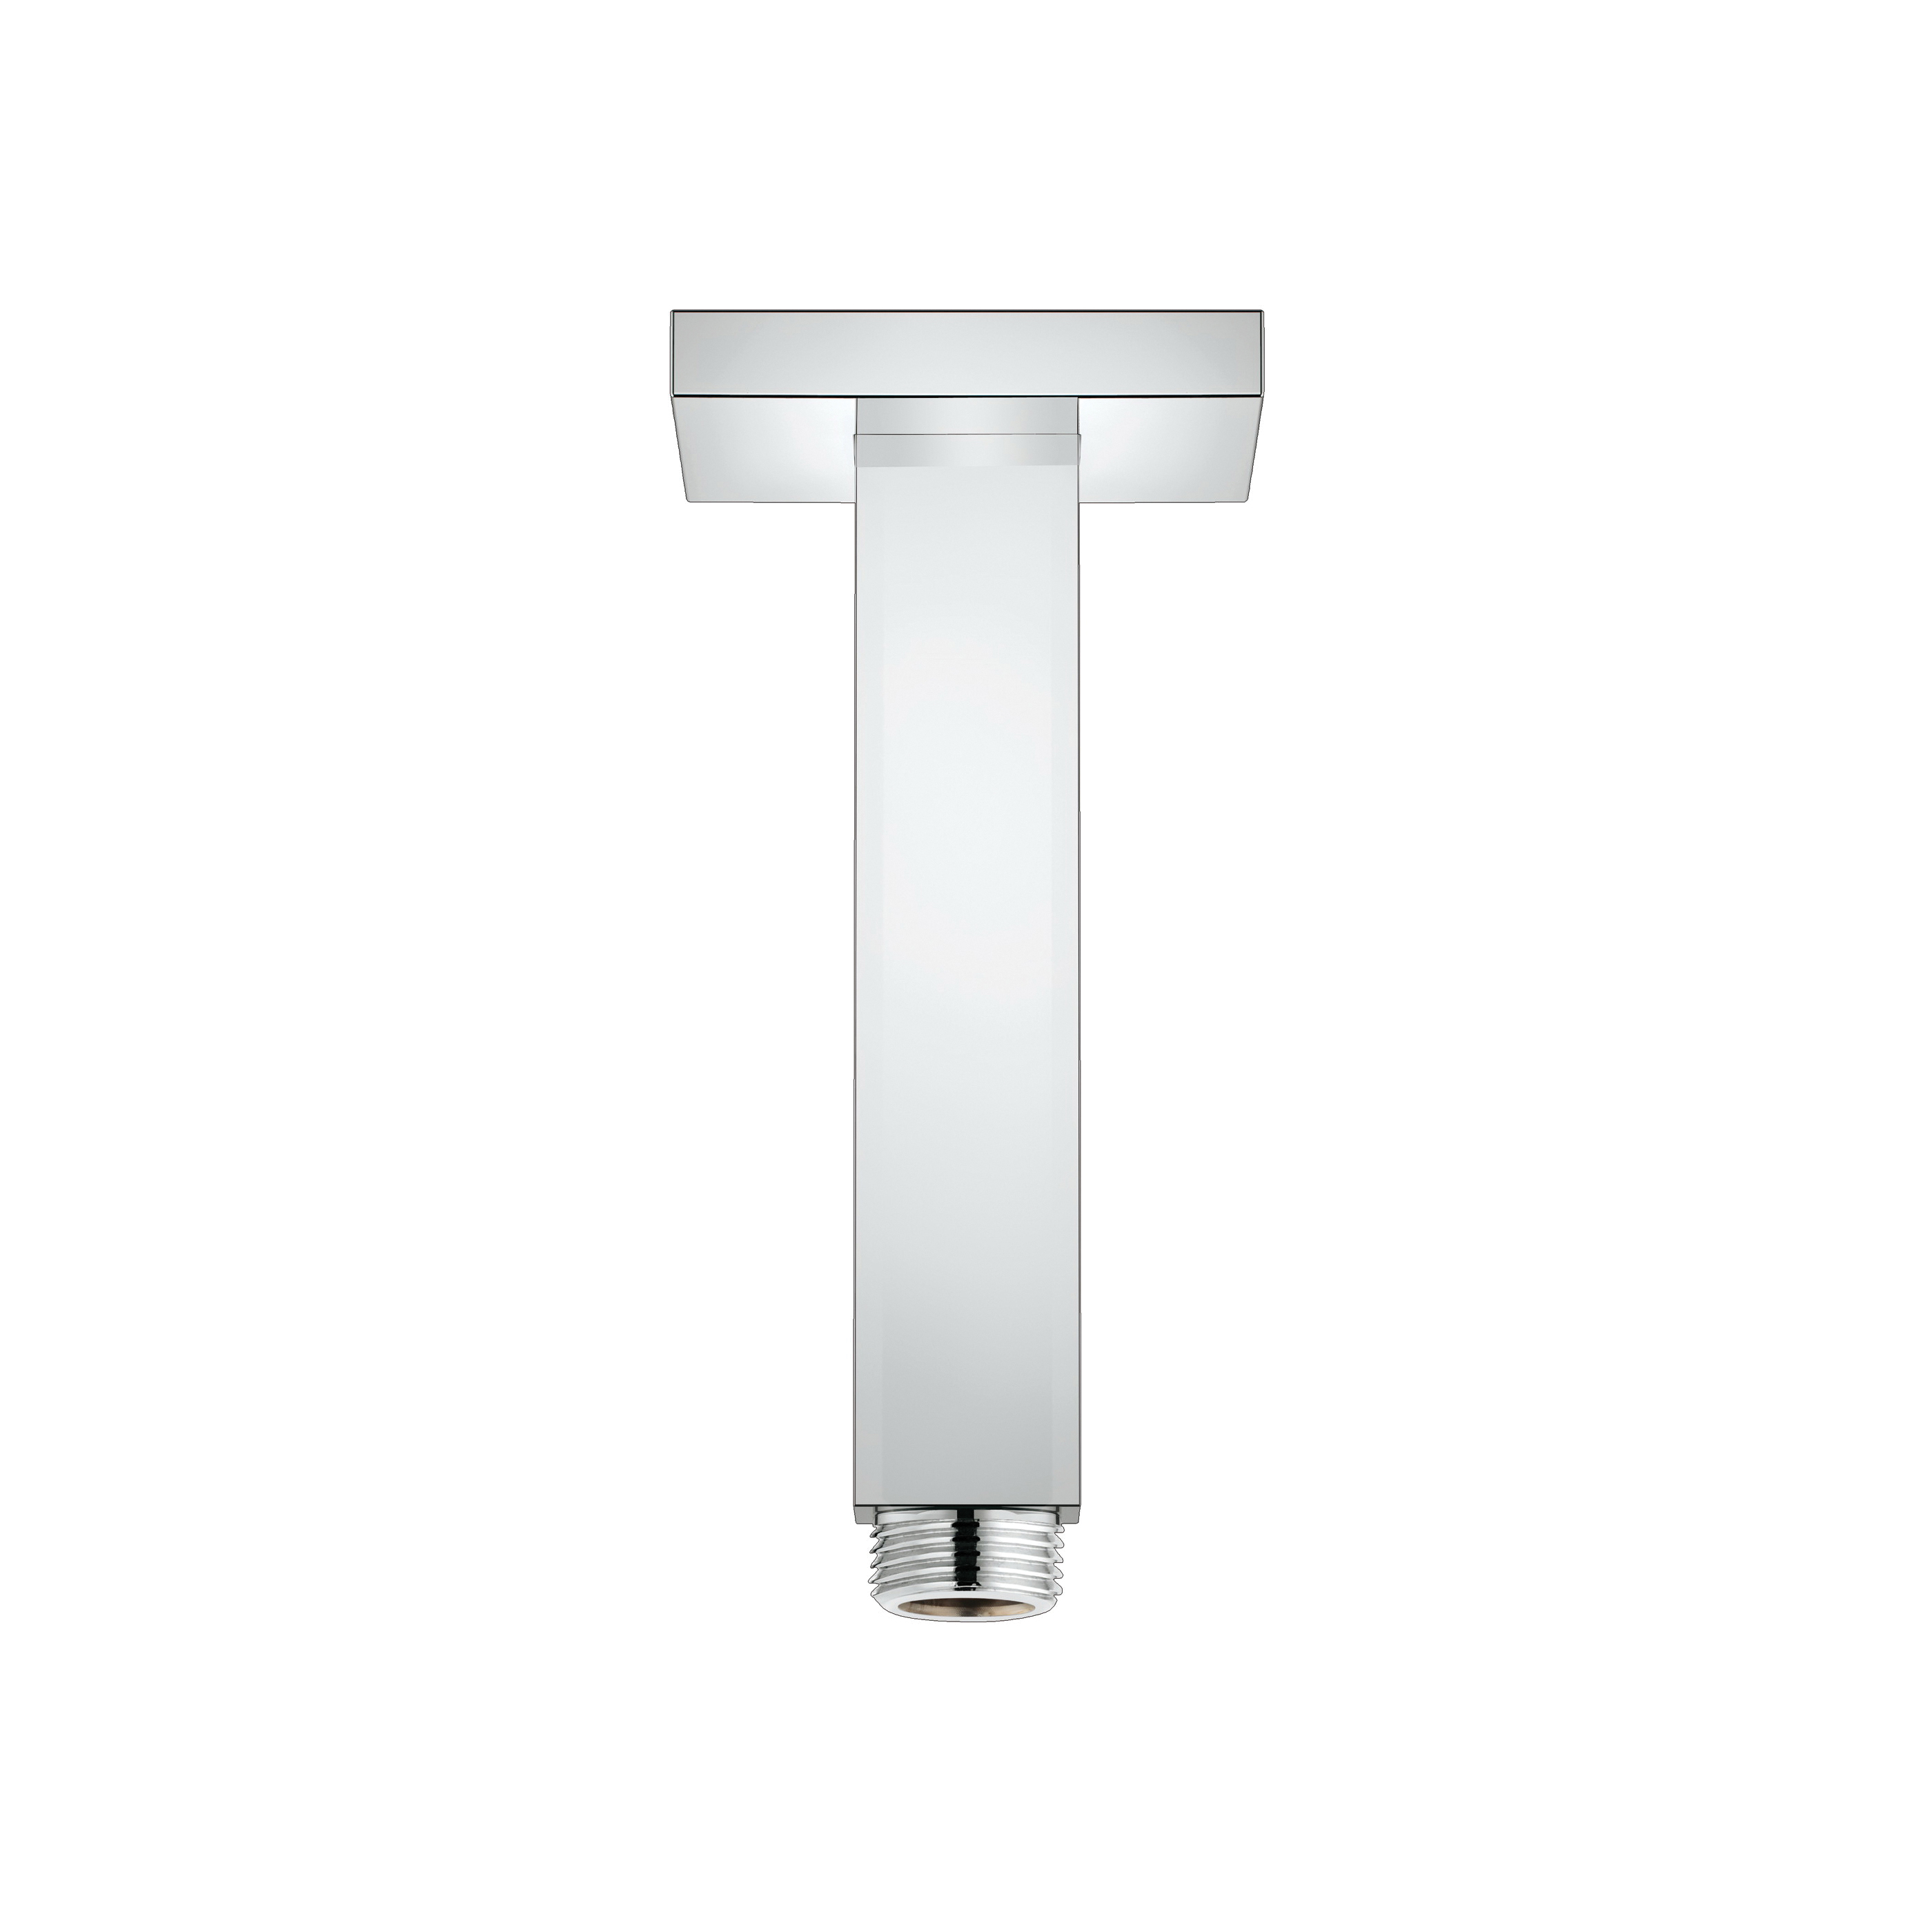 GROHE 27712000 Rainshower® Shower Arm, 6-1/16 in L, 1/2 in NPT, Import